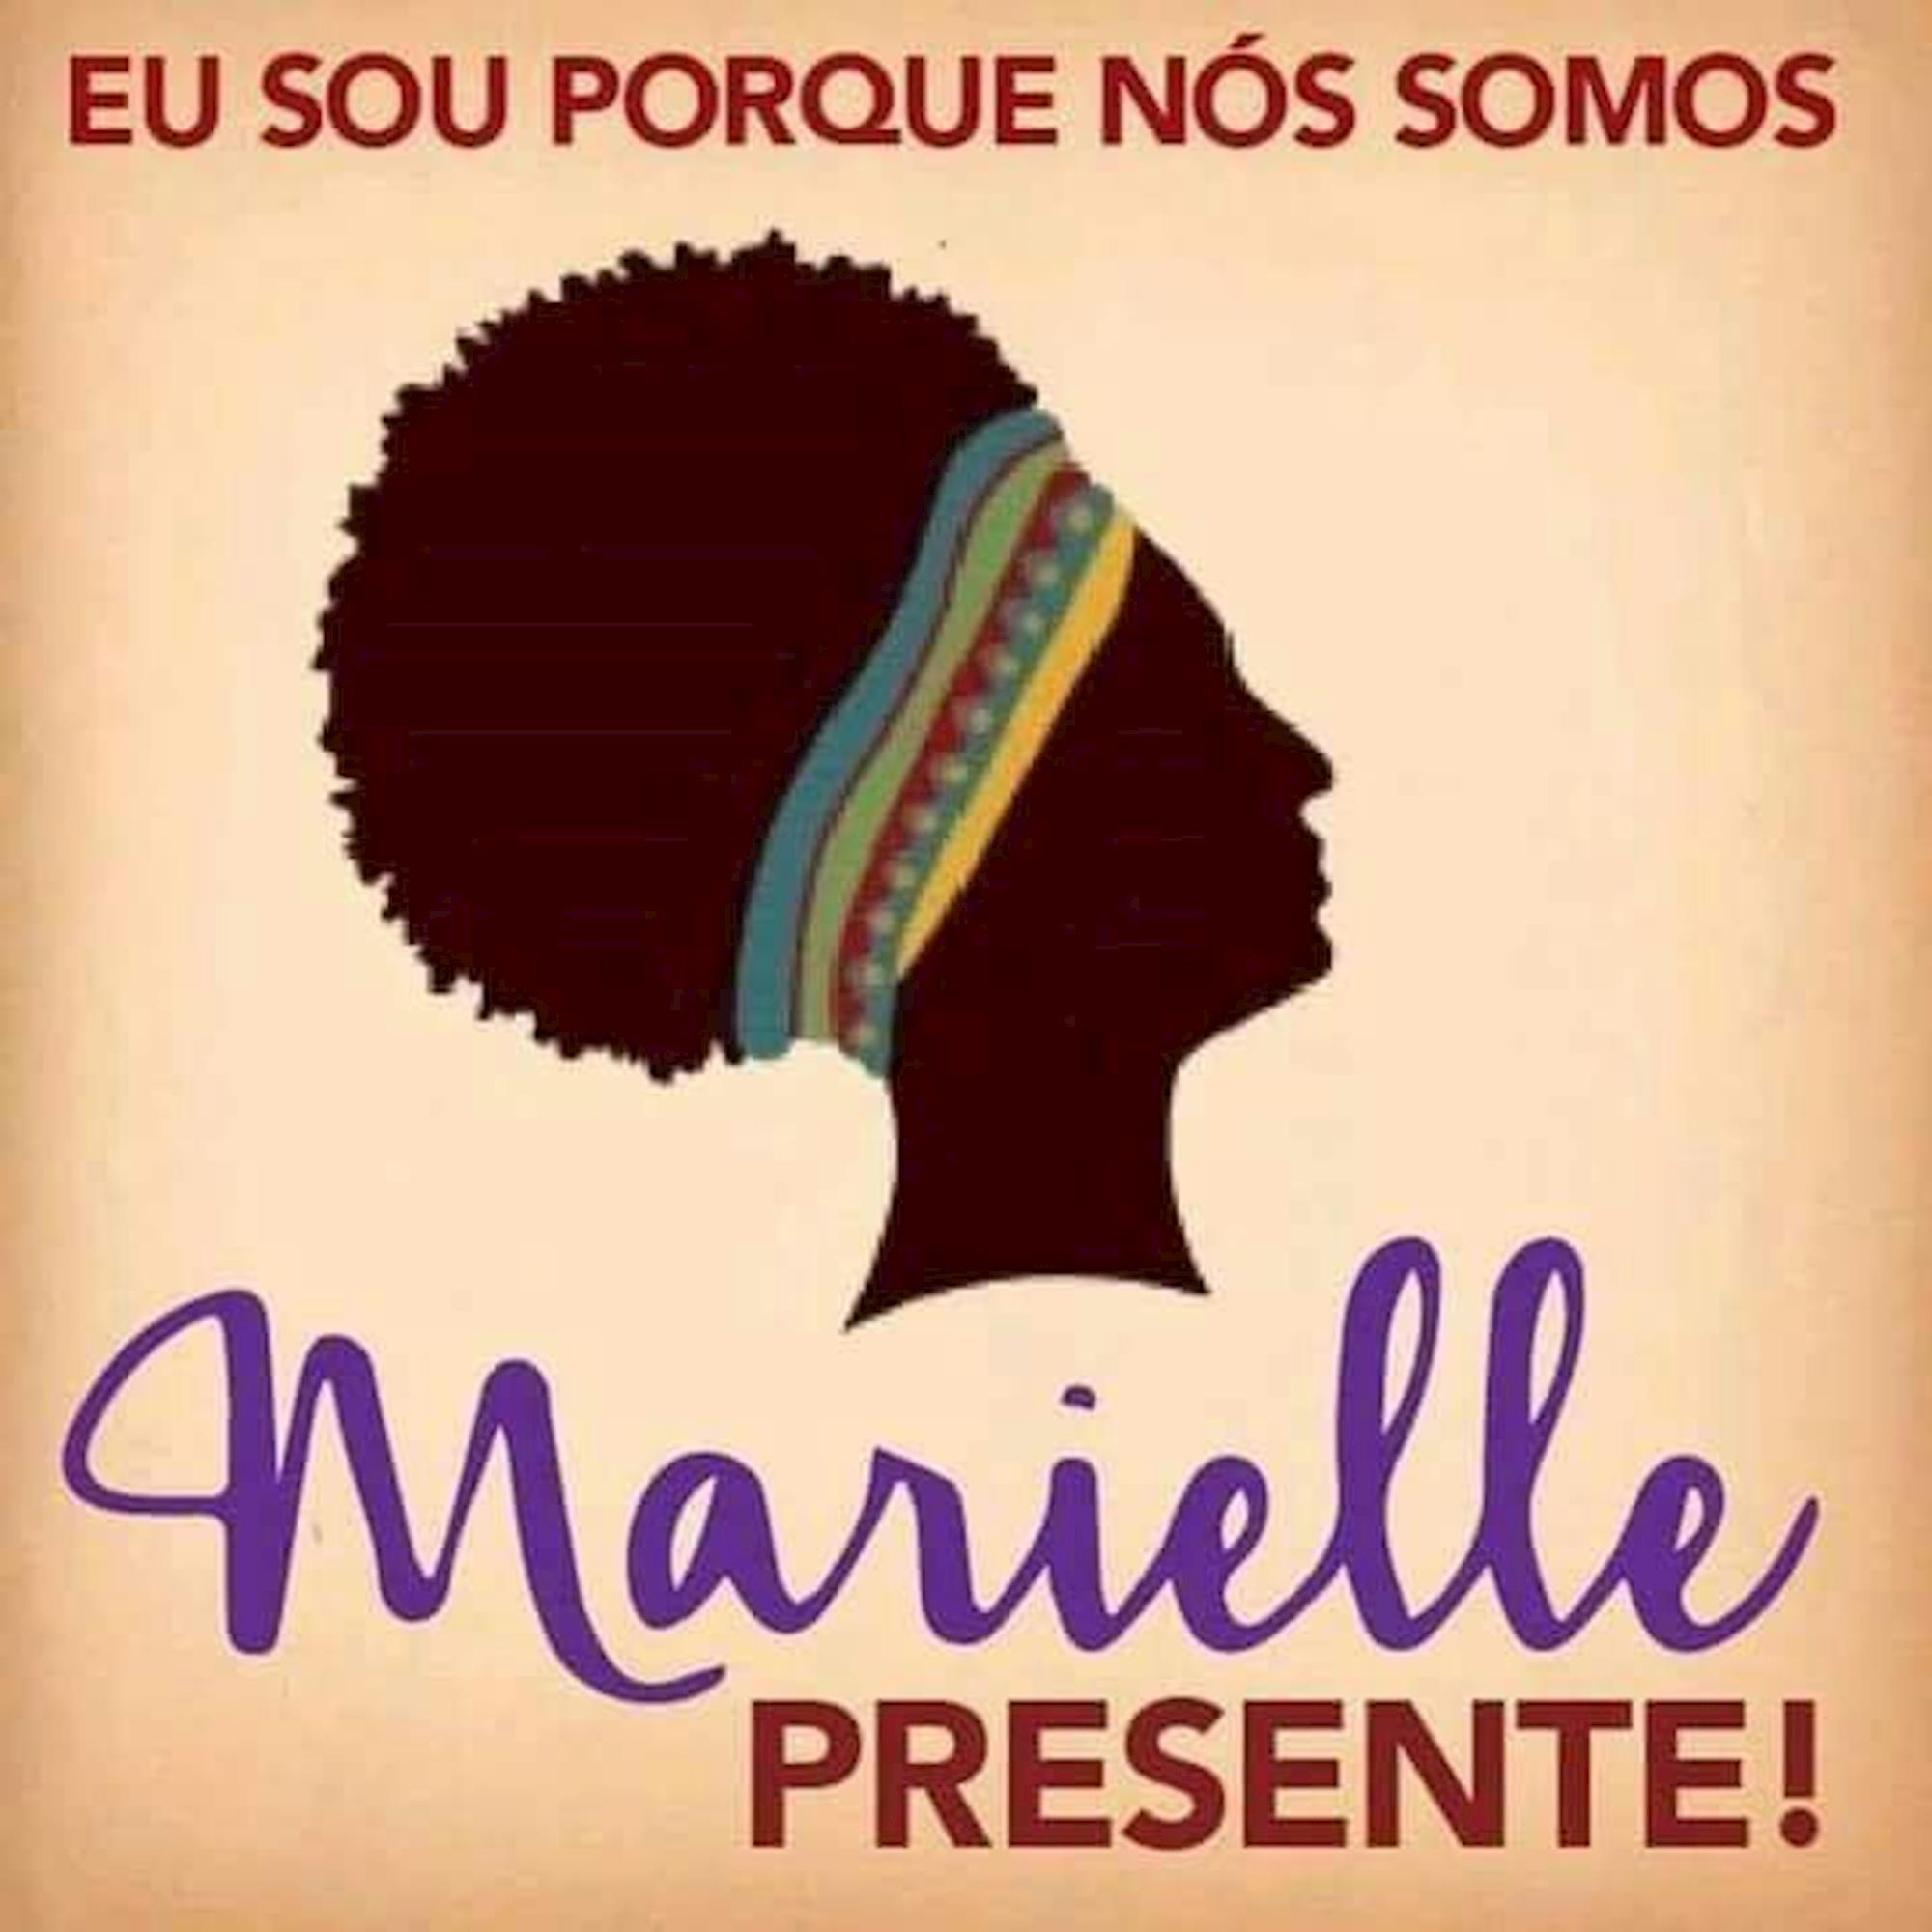 marielle, franco, vive, nota, smetal, mulher, mulheres,